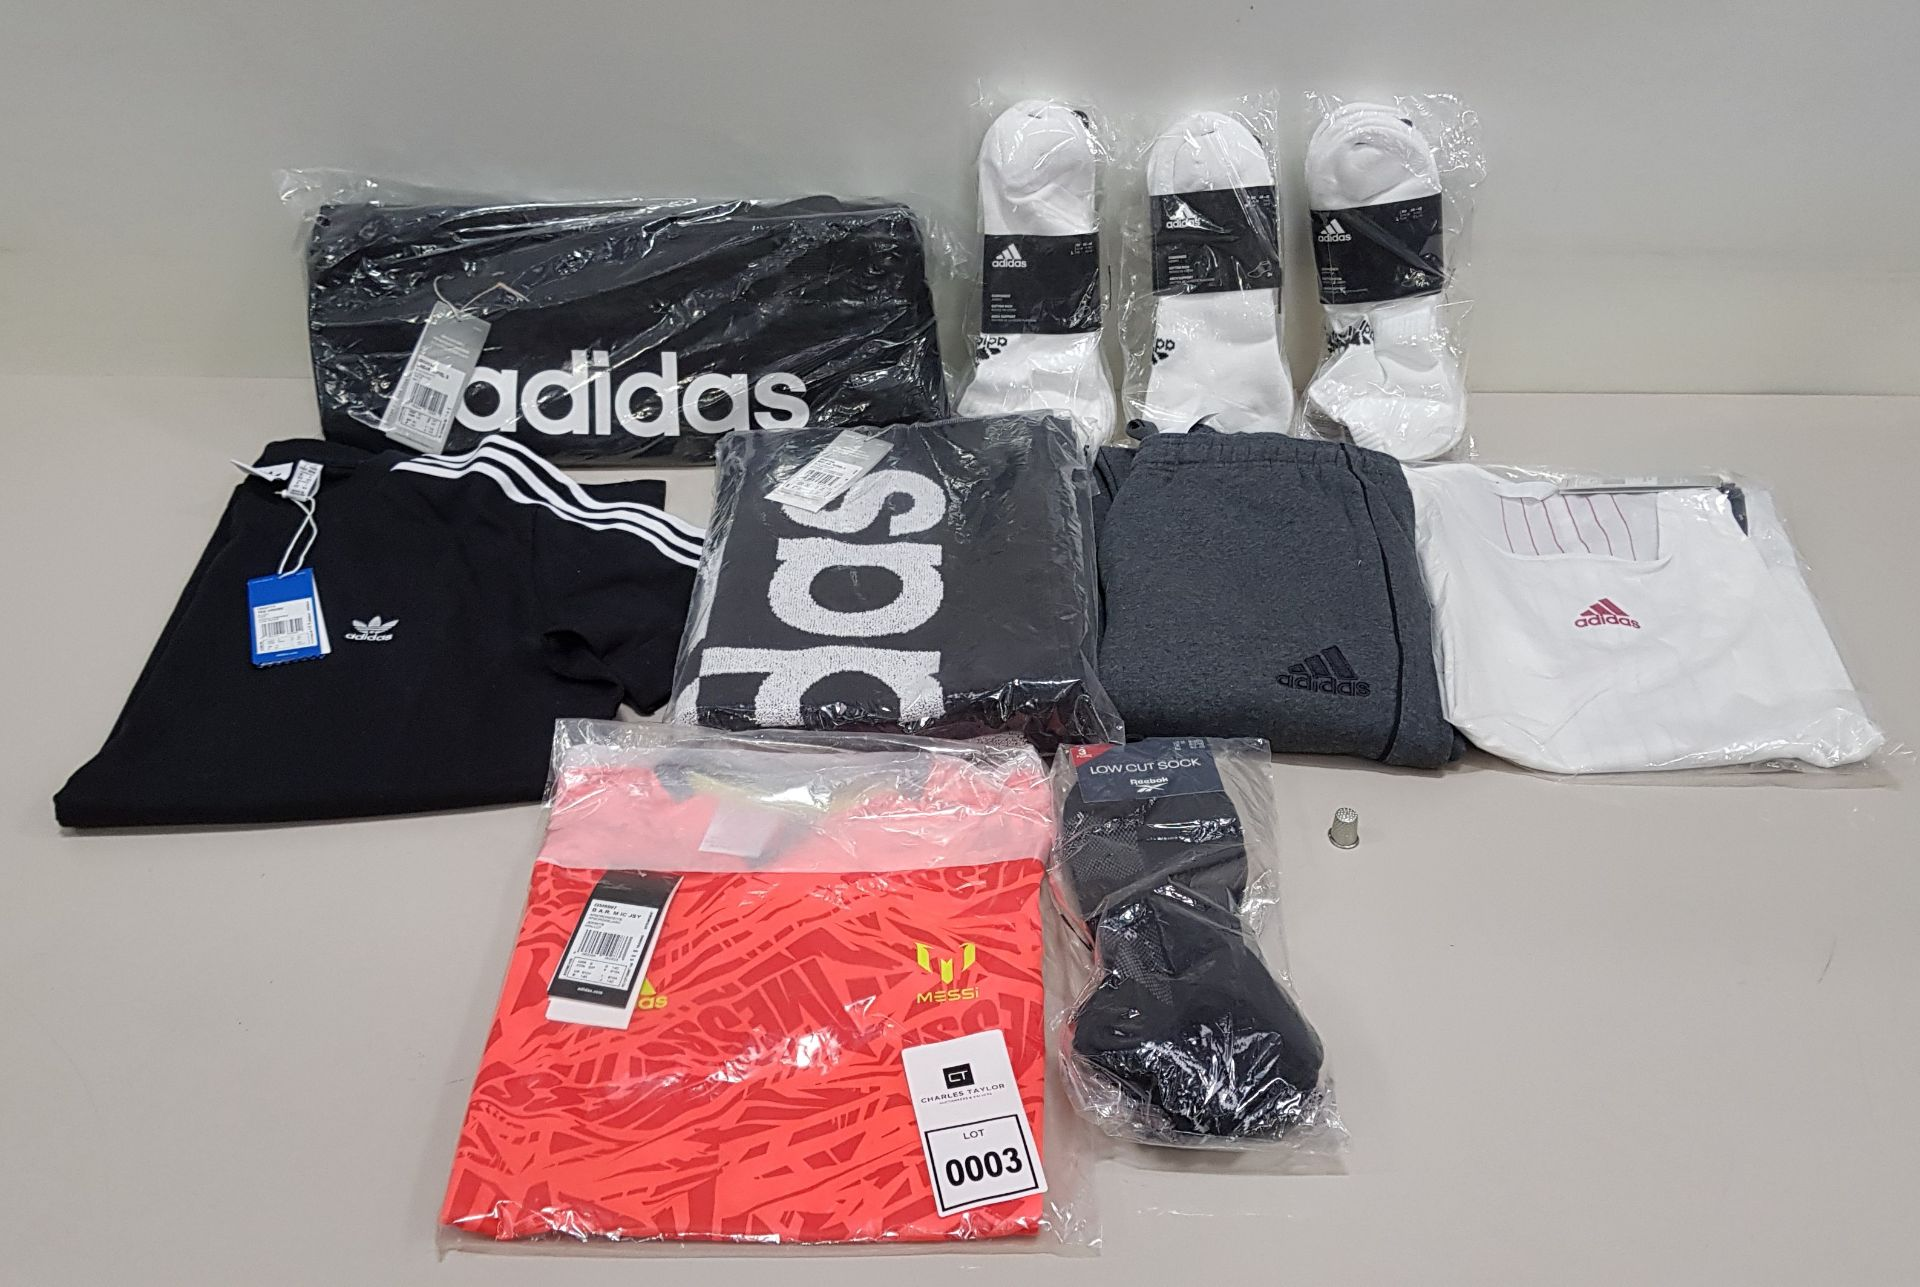 10 PIECE CLOTHING LOT CONTAINING ADIDAS SOCKS, ADIDAS T SHIRT, ADIDAS SWEATPANTS AND AN ADIDAS